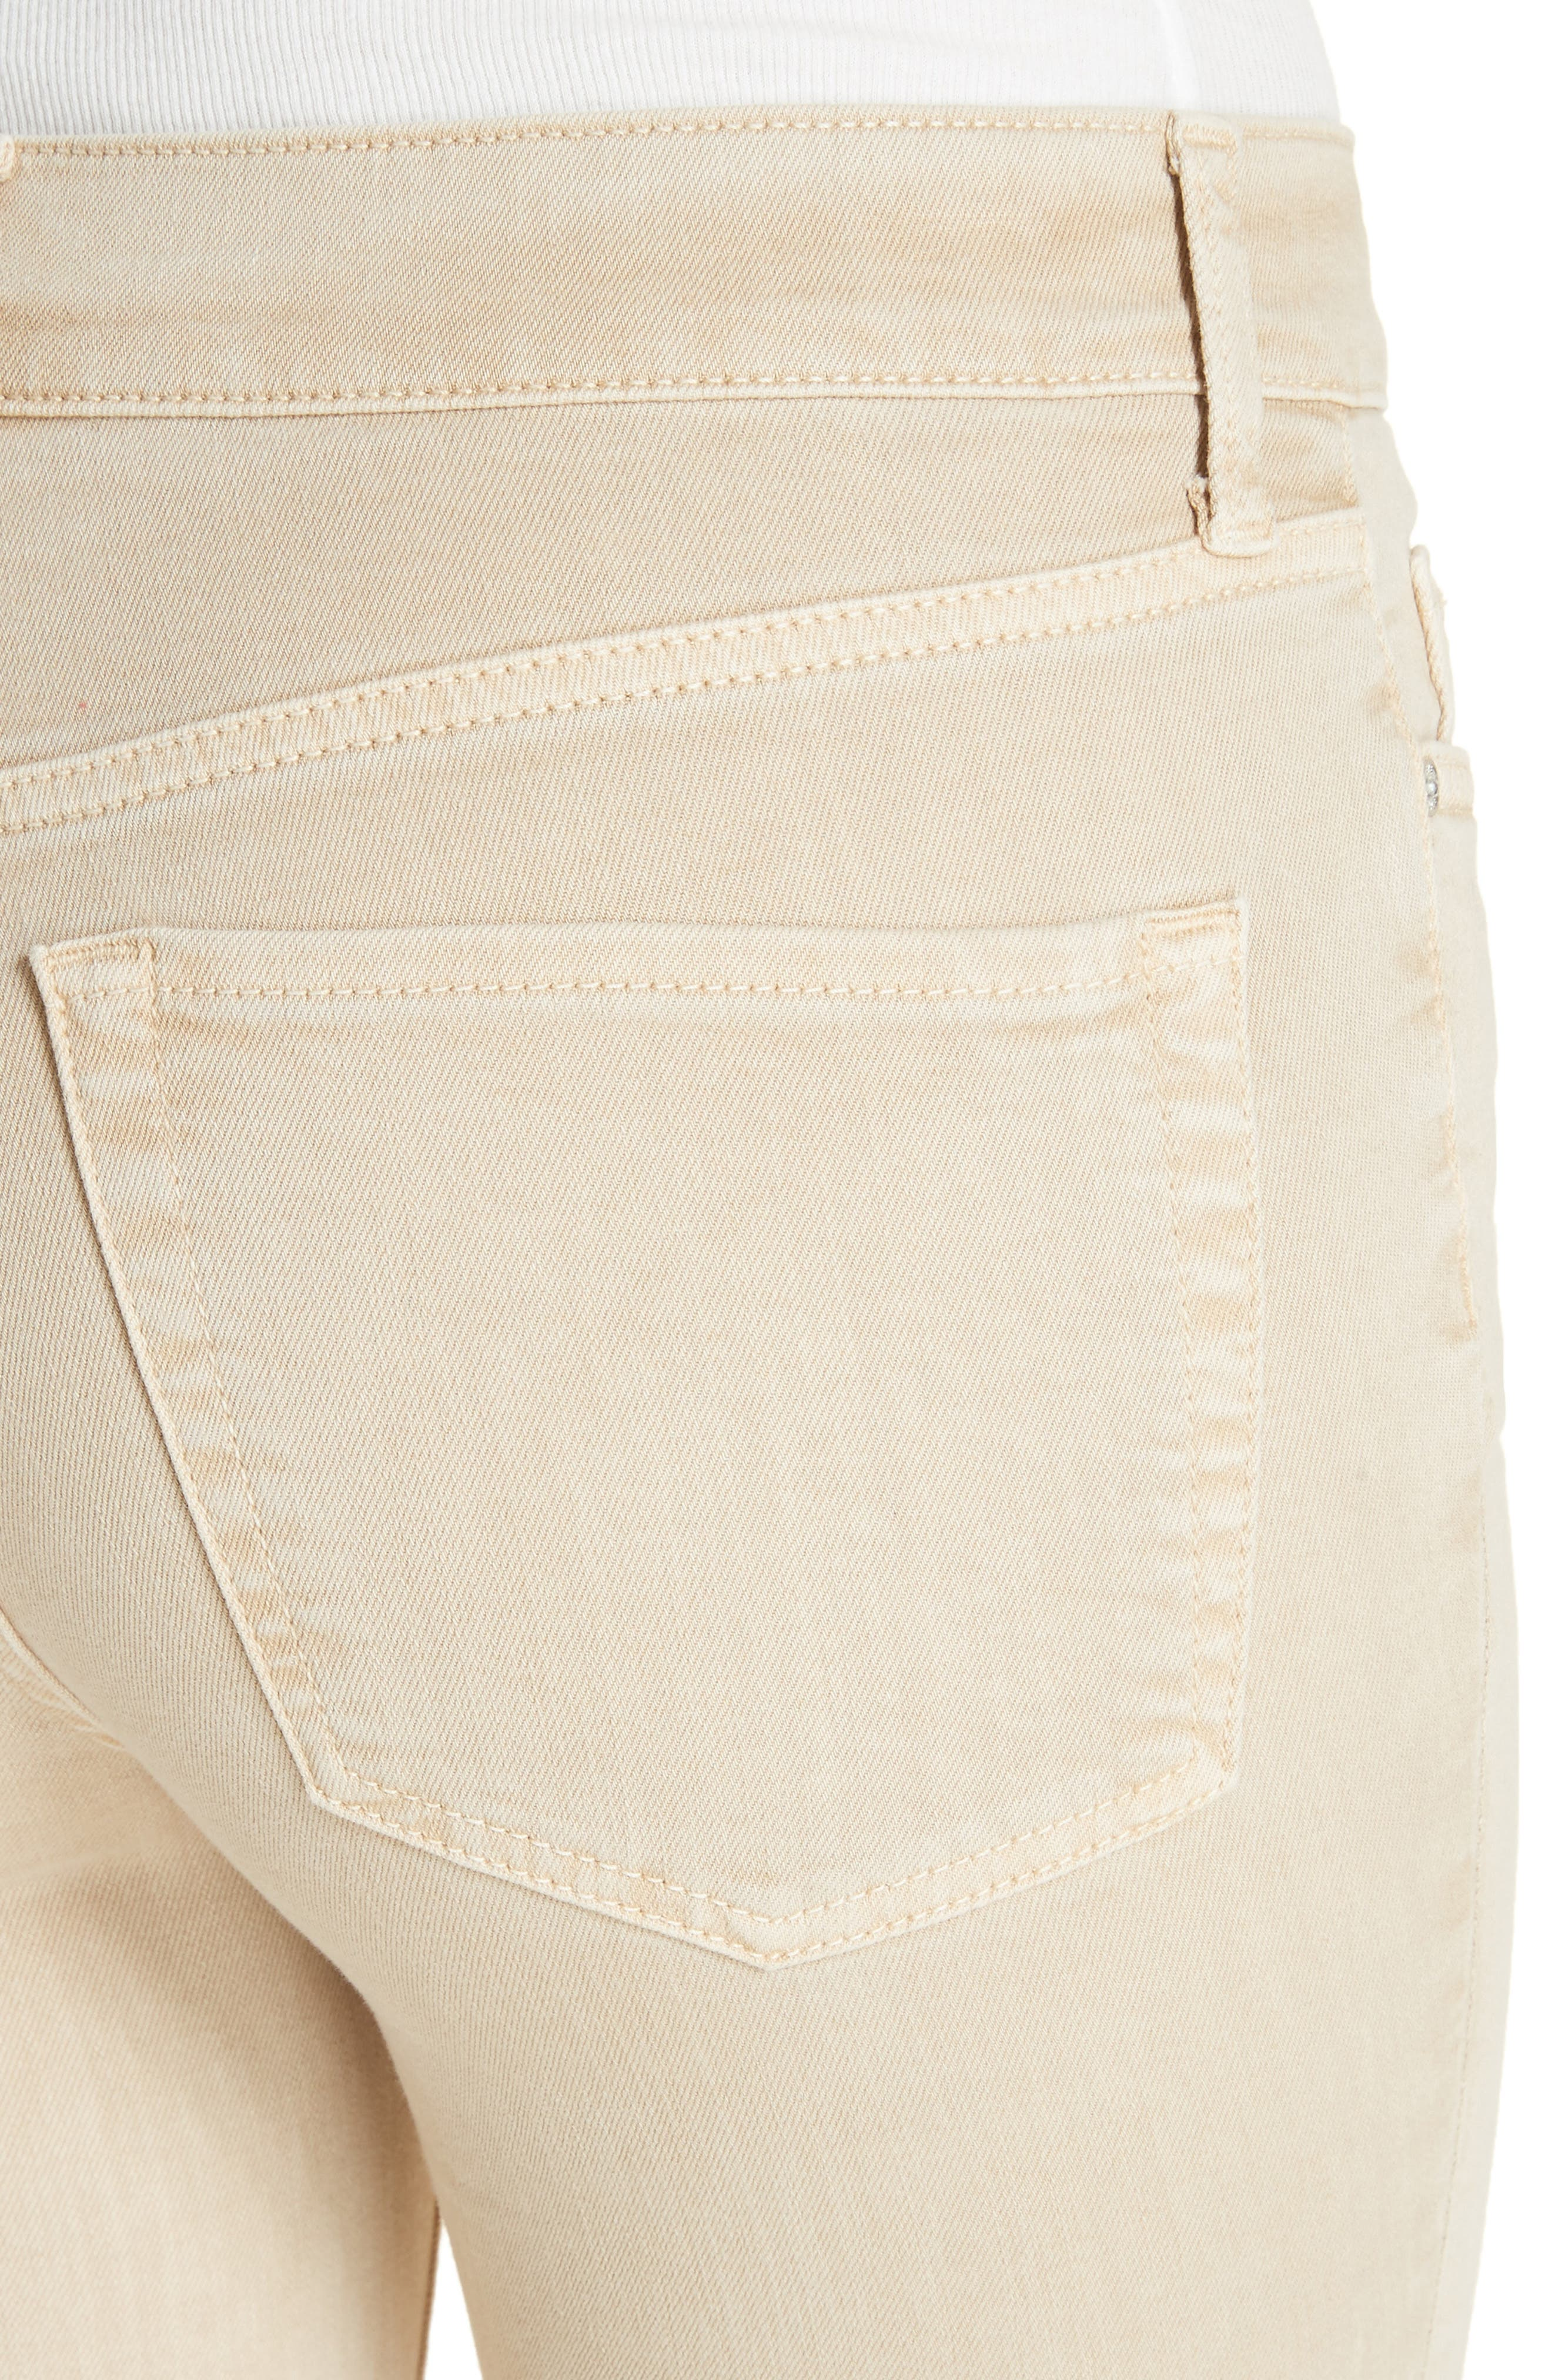 High Waist Busted Knee Skinny Jeans,                             Alternate thumbnail 4, color,                             250